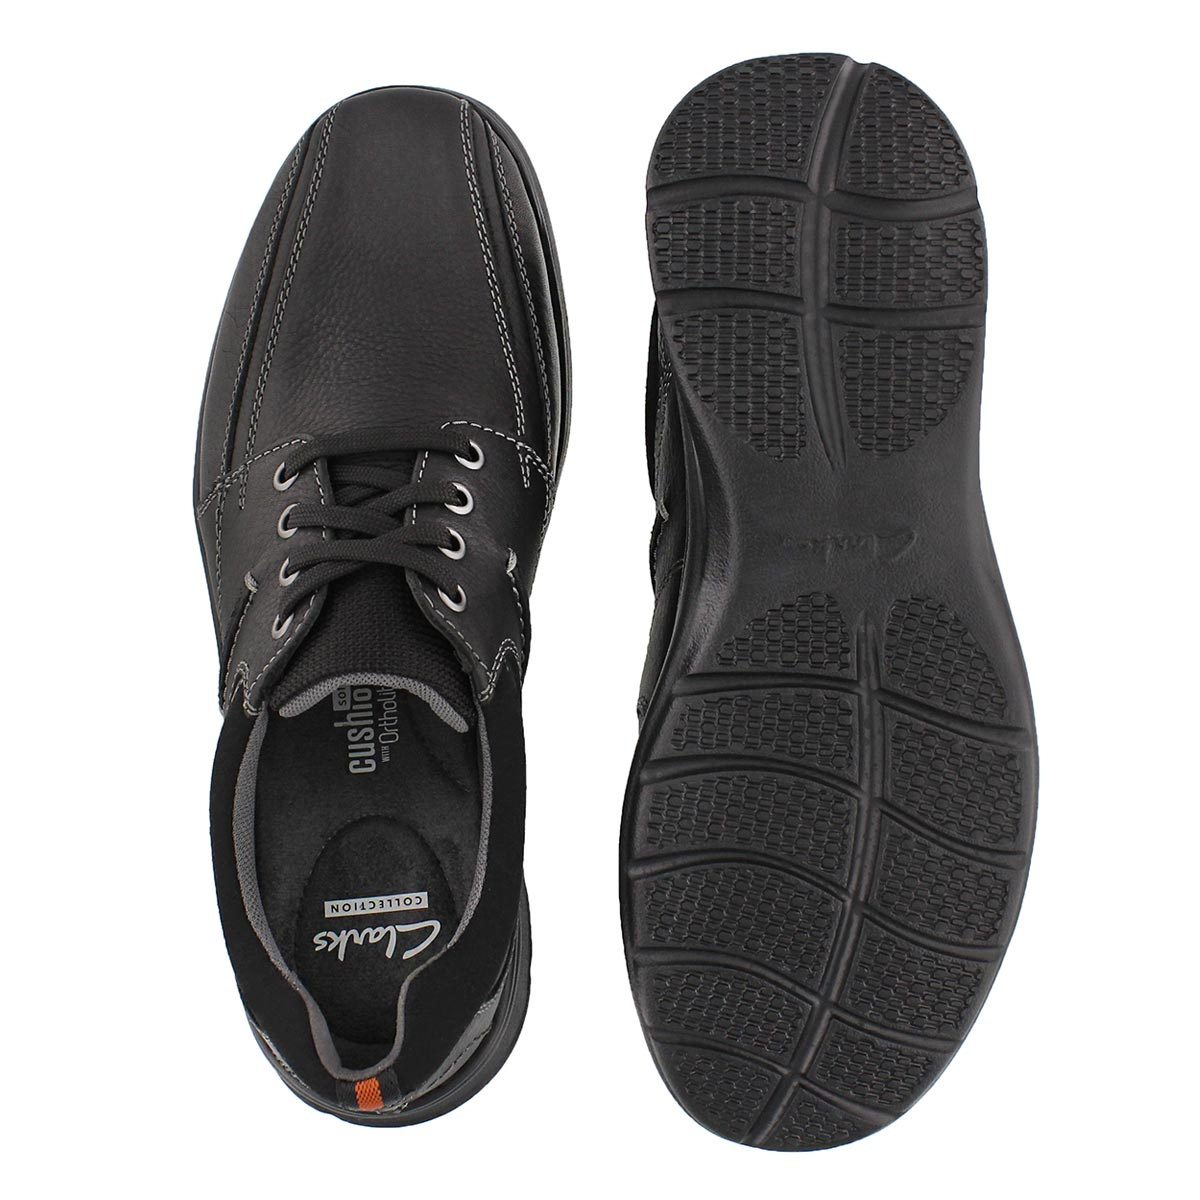 Mns Cotrell Walk black oxford - WIDE